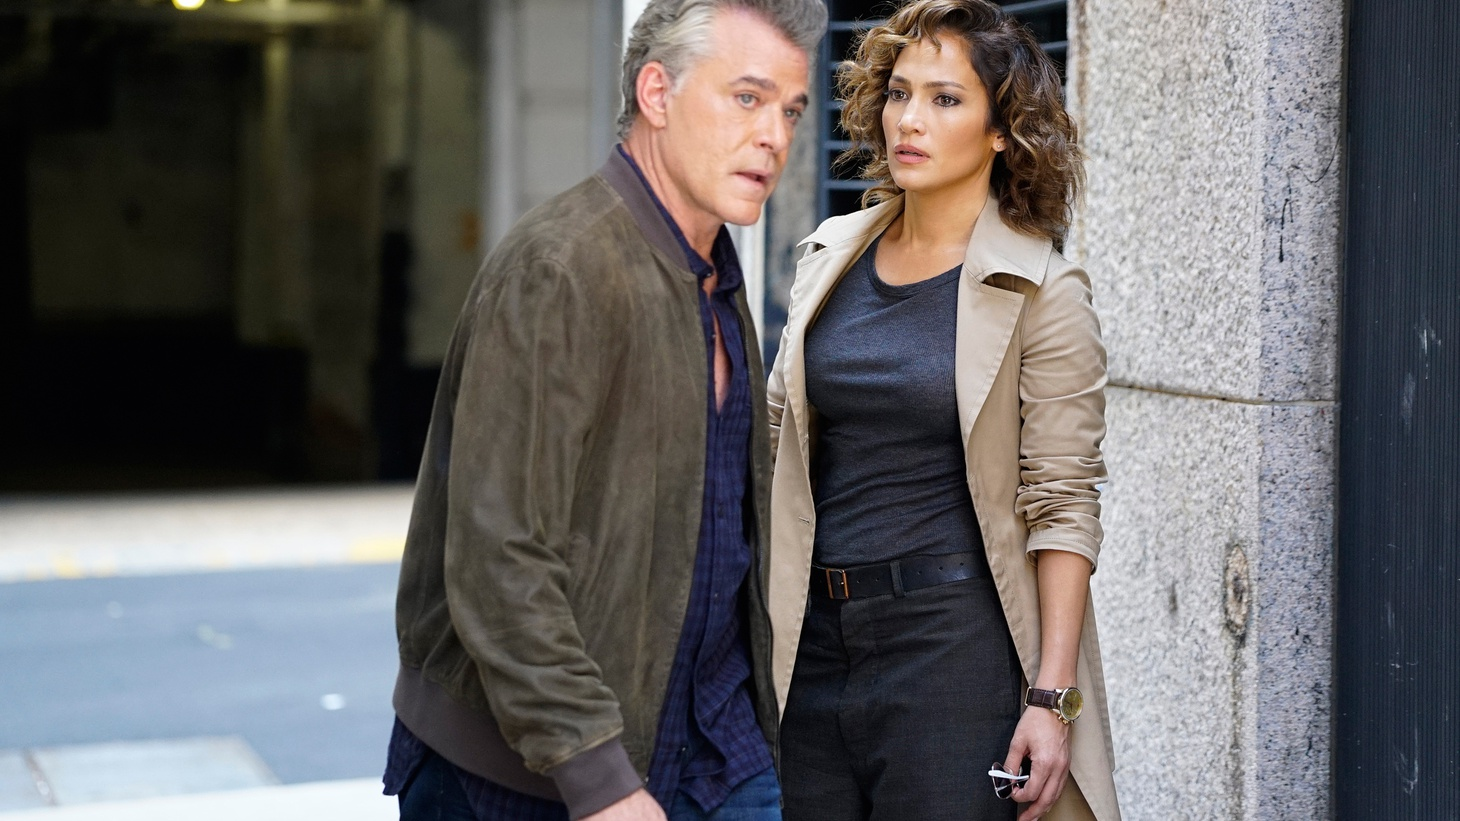 Actor Ray Liotta stops by to discuss his interesting and unexpected character in NBC's 'Shades of Blue'